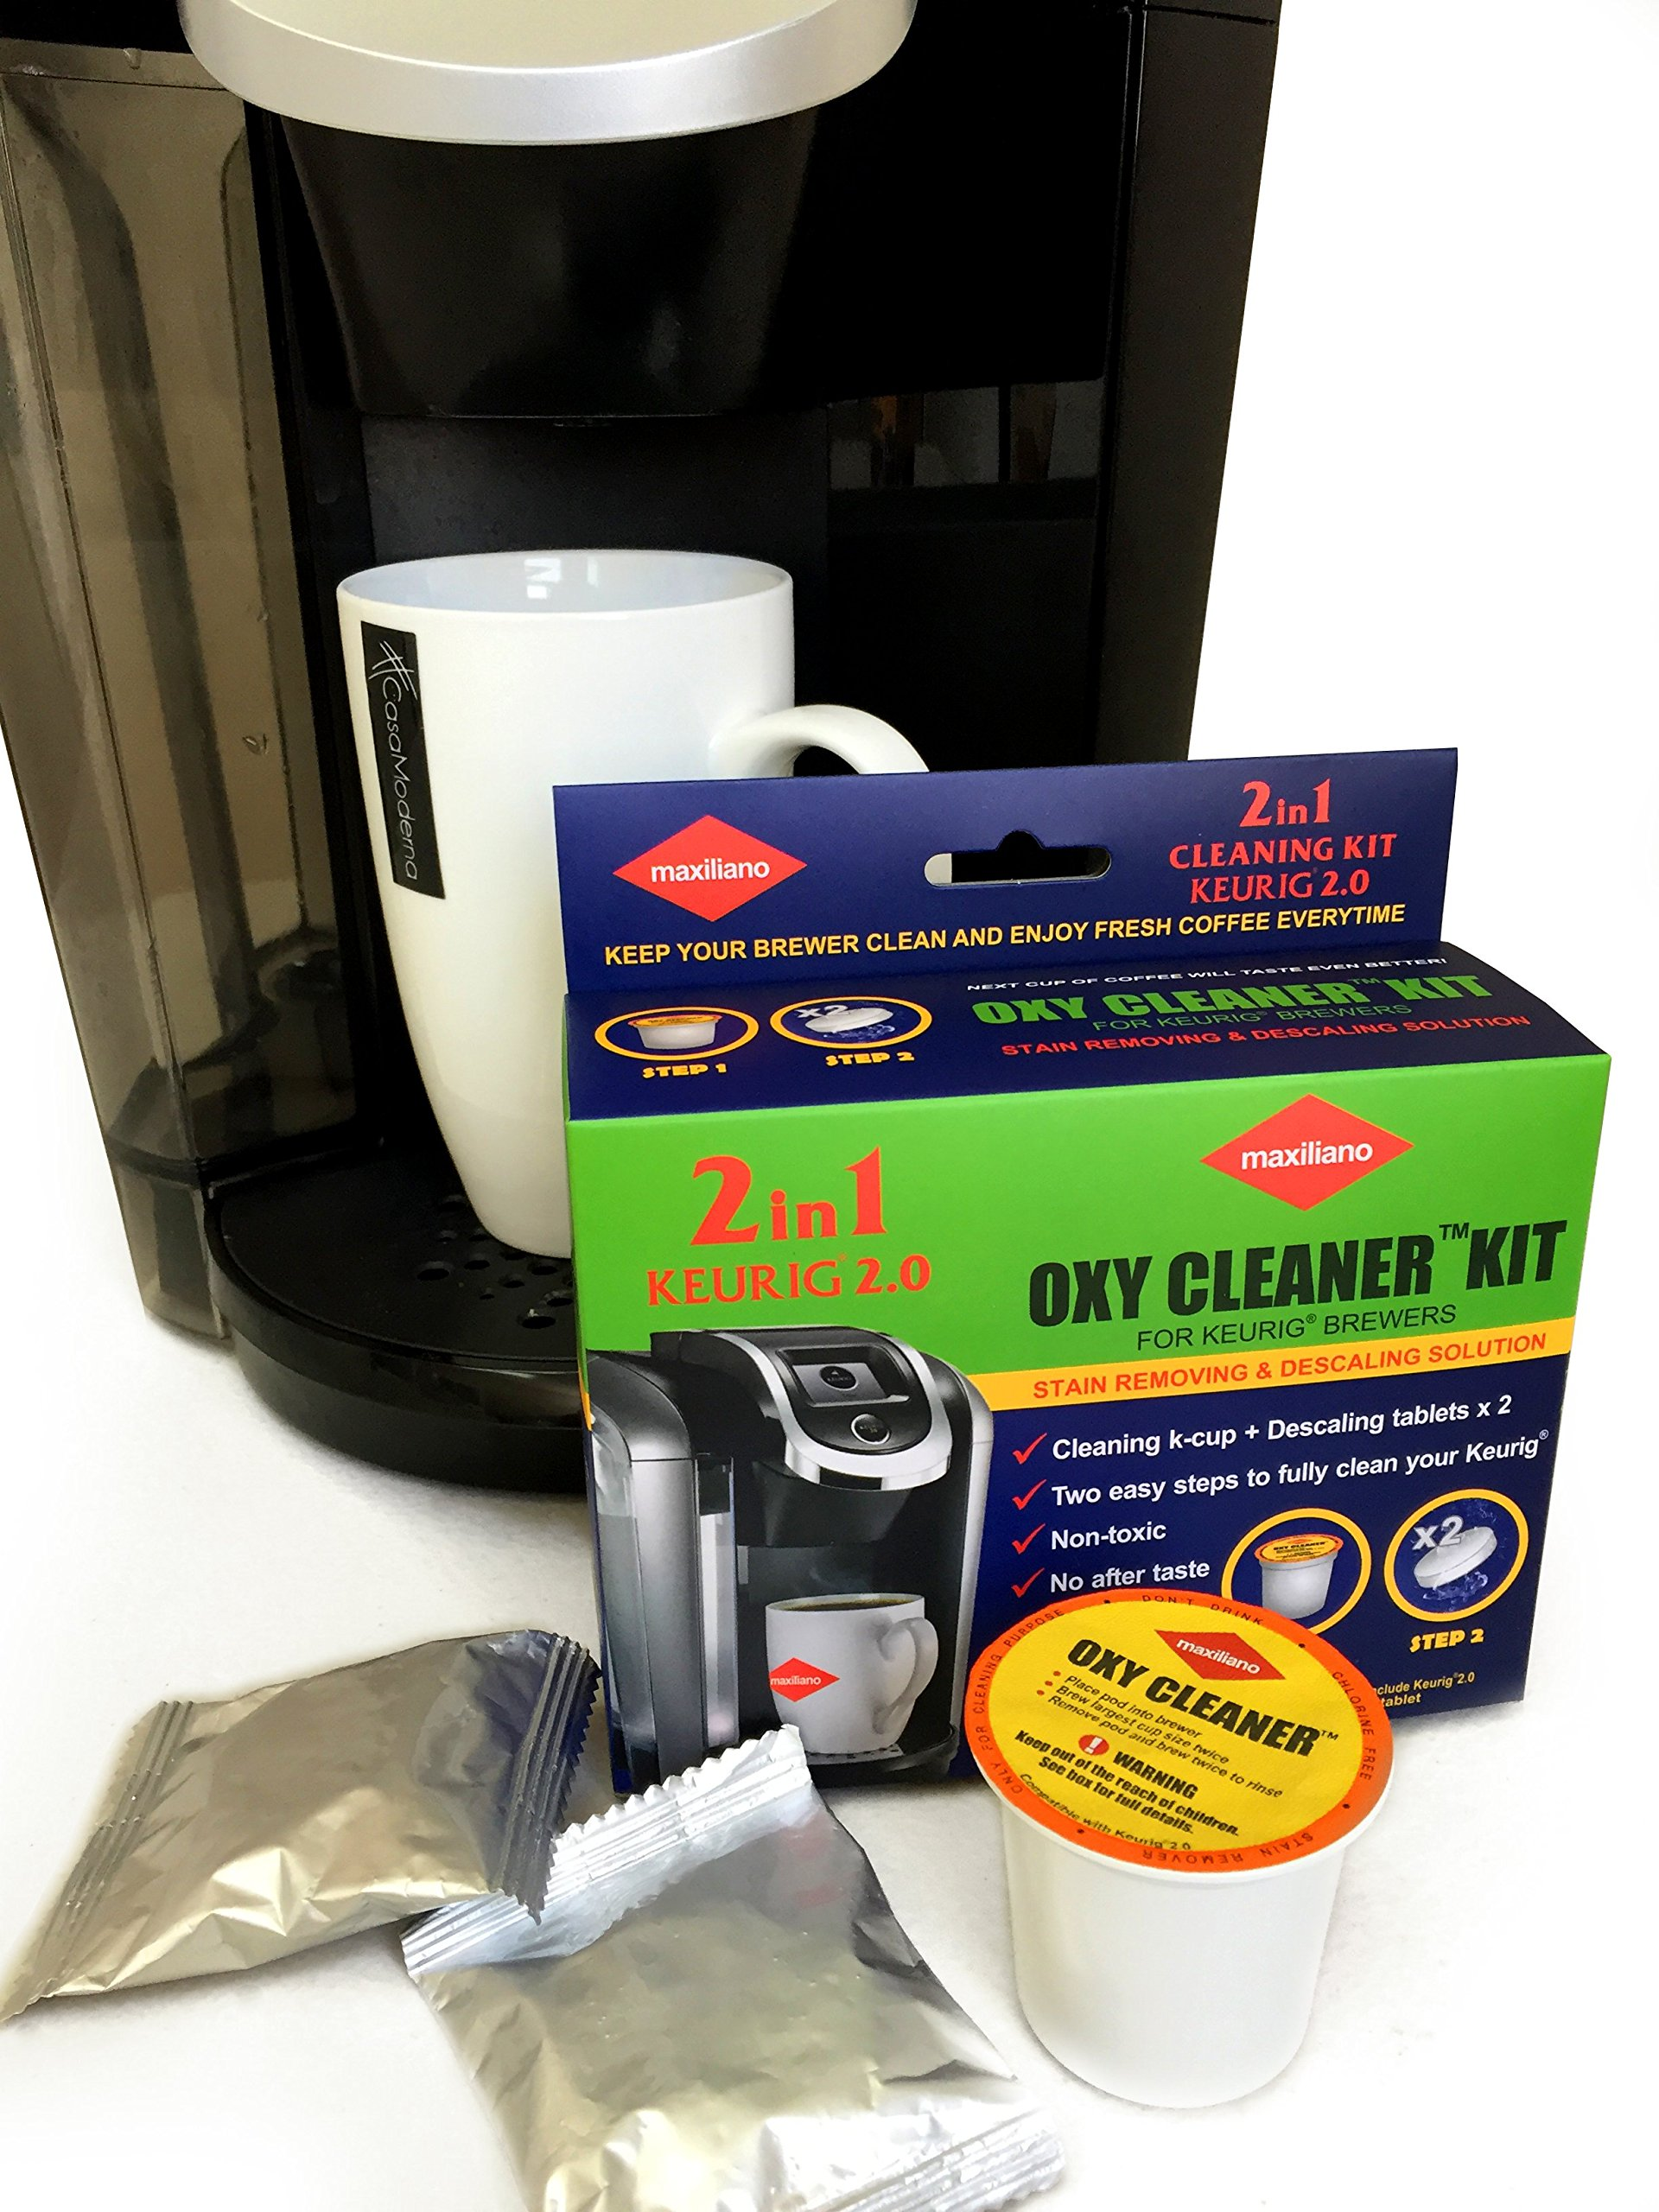 Galleon descaling kit descaler for keurig 2 0 for all k cup keurig brewers biodegradable for Kitchen set toys r us philippines